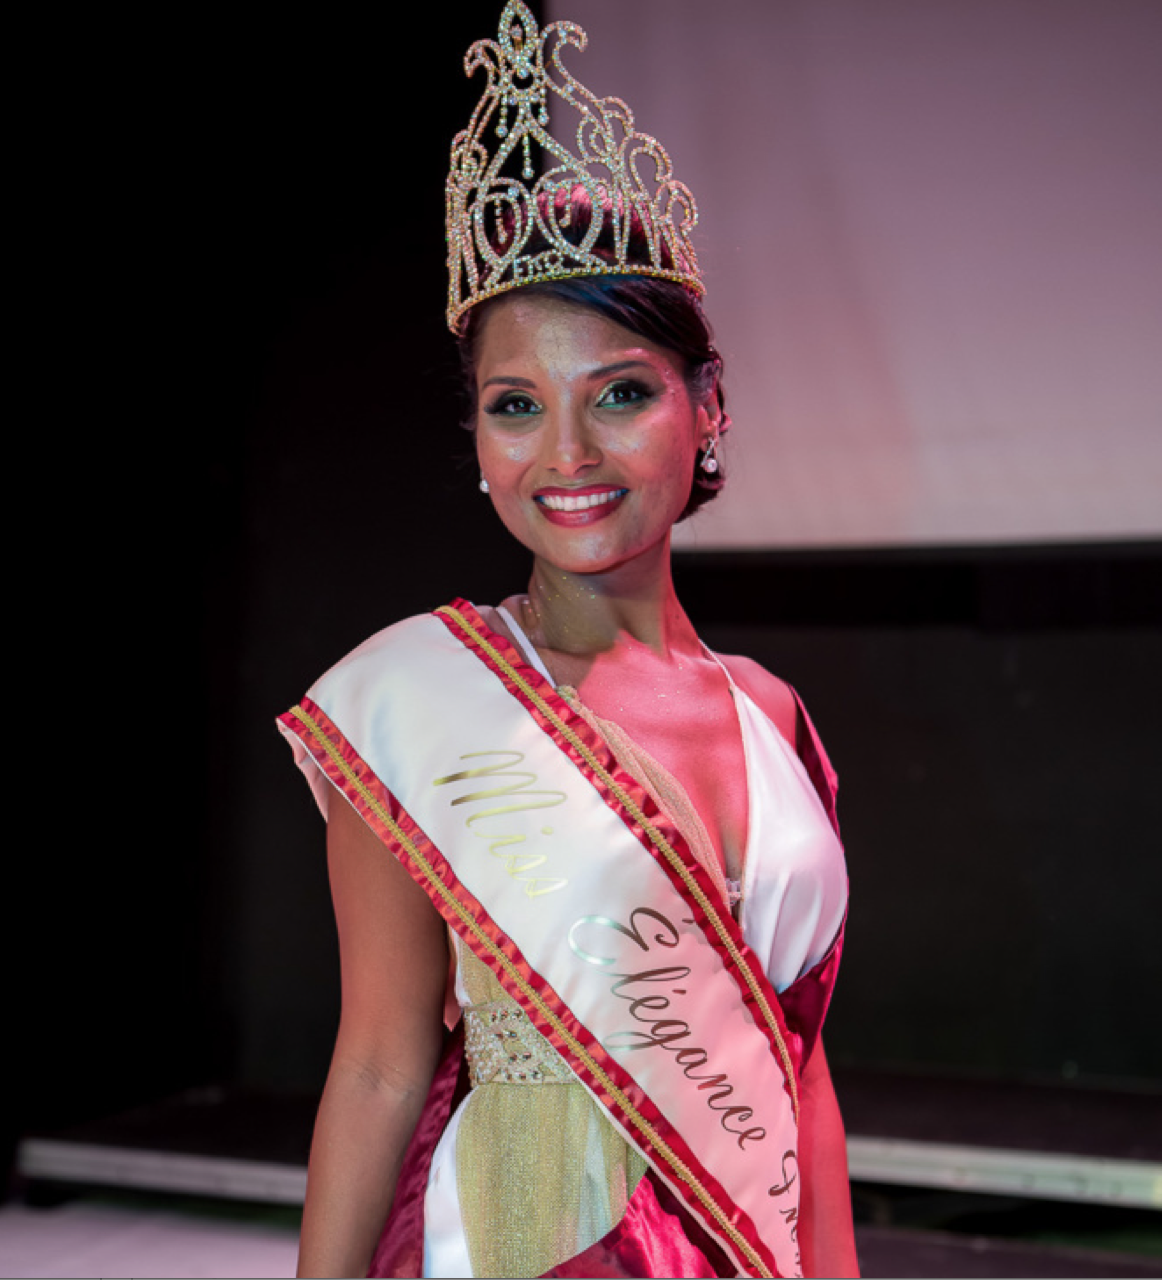 Florence Cataye, Miss Elégance Inter 2016